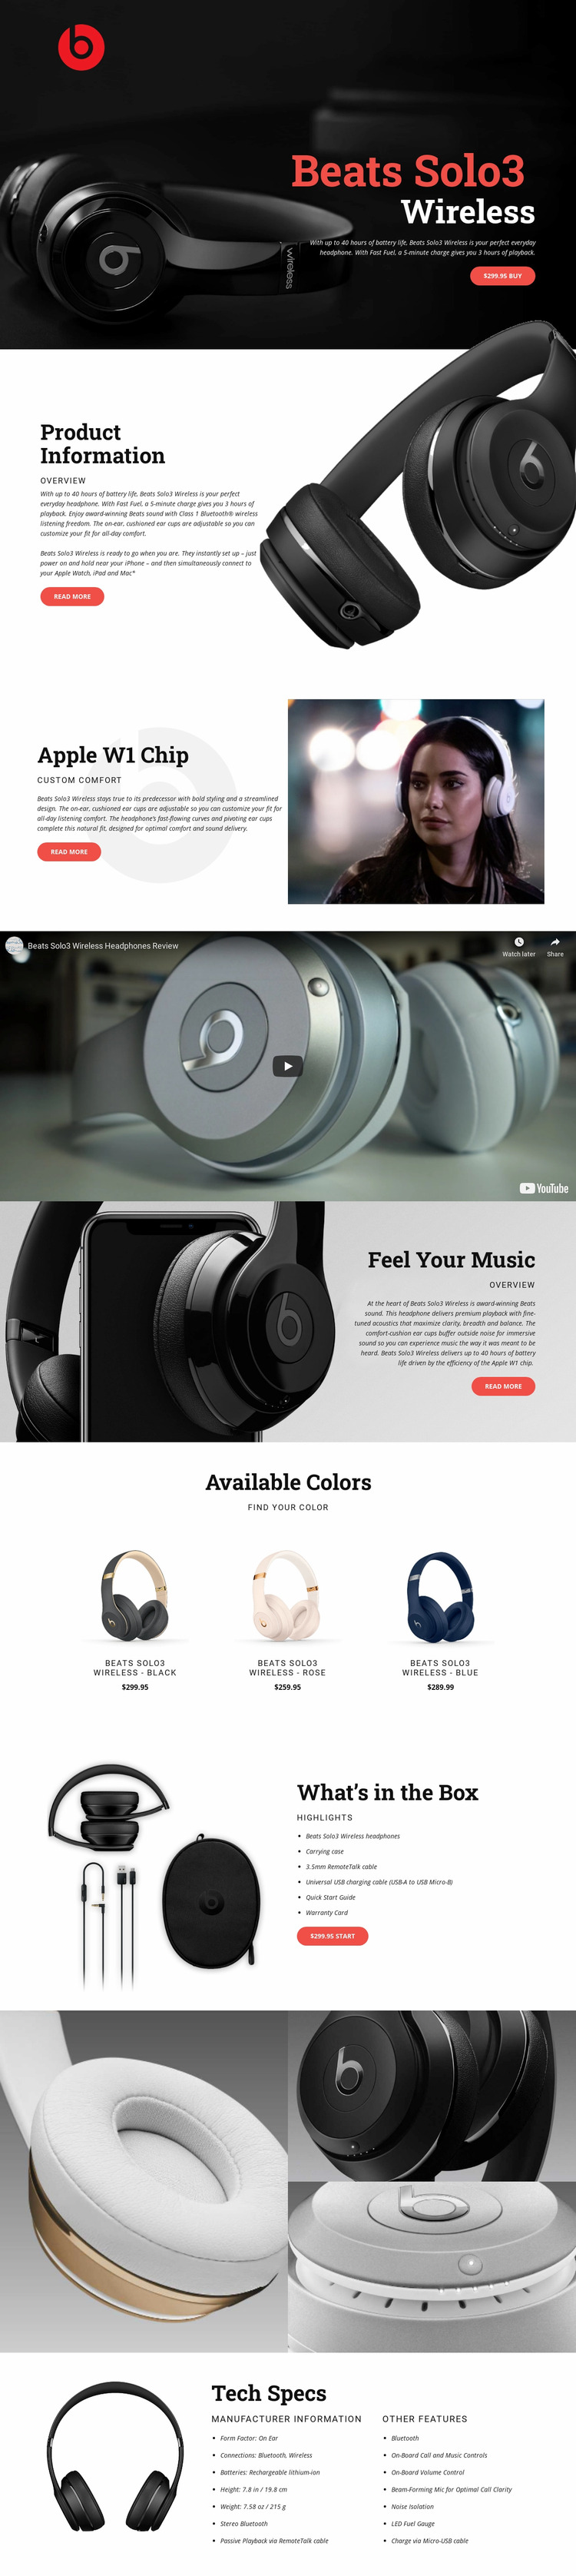 Outstanding quality of music Website Maker